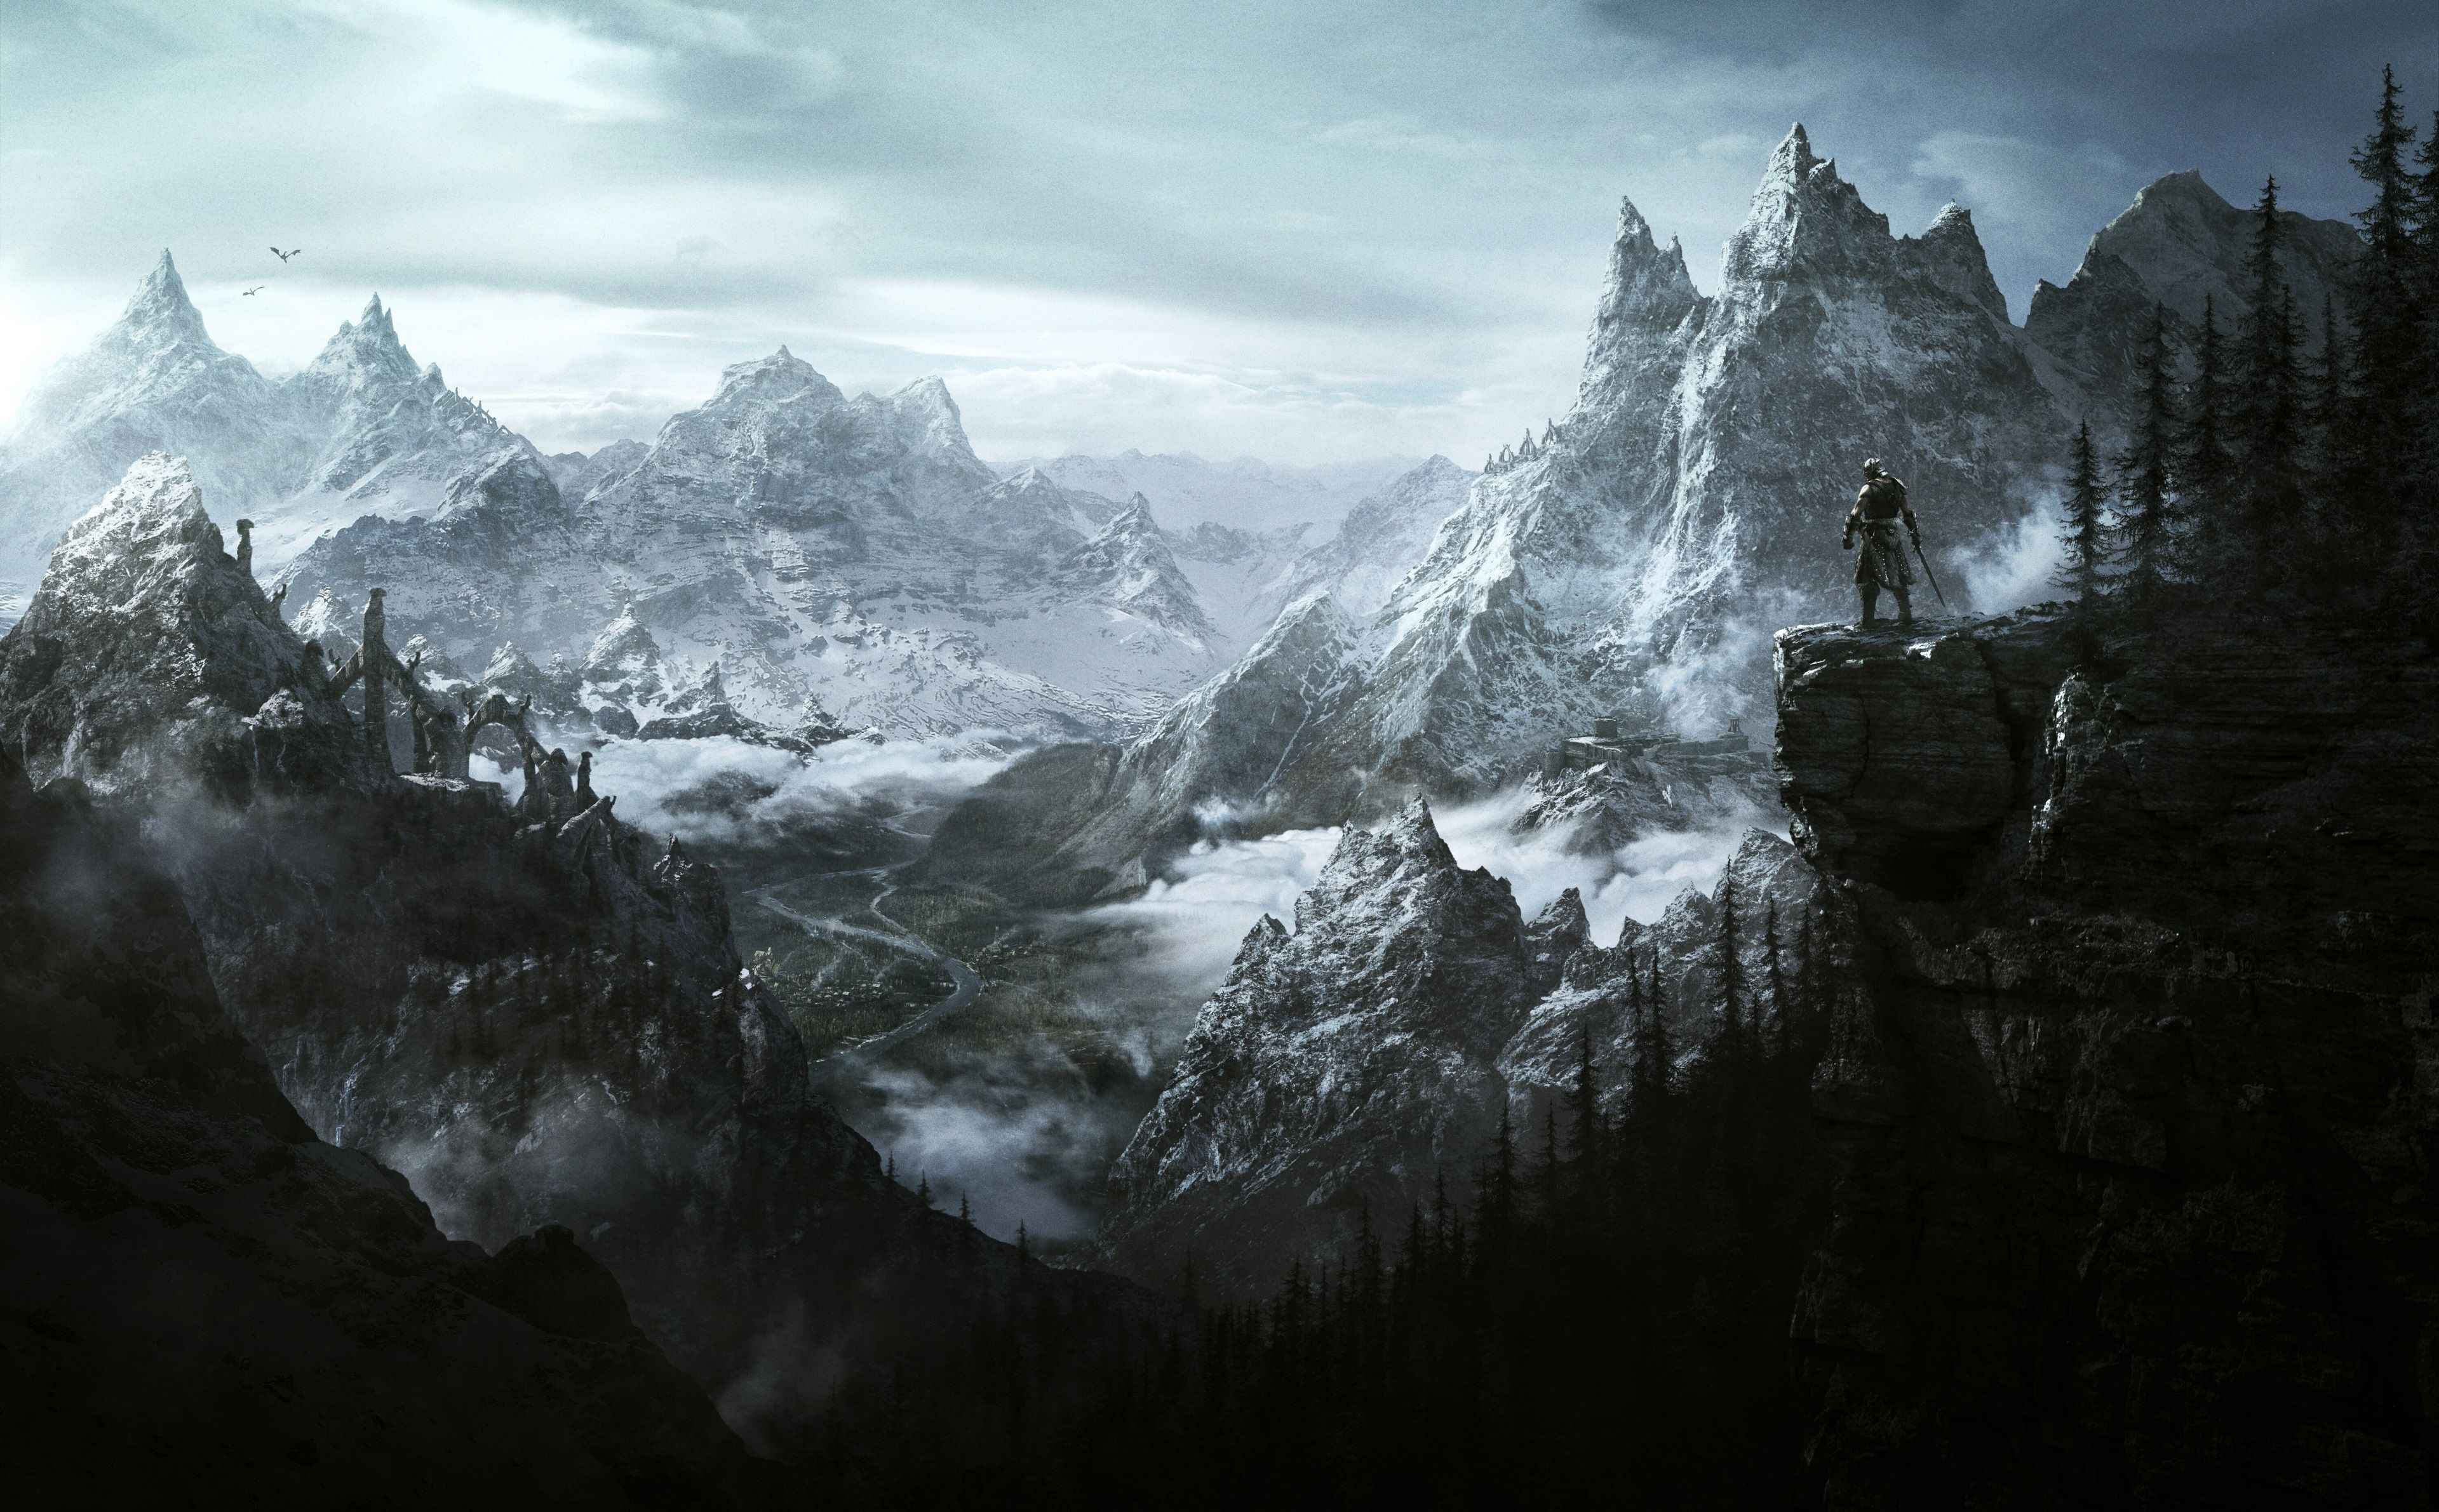 3840x2381 Skyrim 4k Hd Computer Wallpaper Widescreen Skyrim Wallpaper Skyrim Art Elder Scrolls V Skyrim